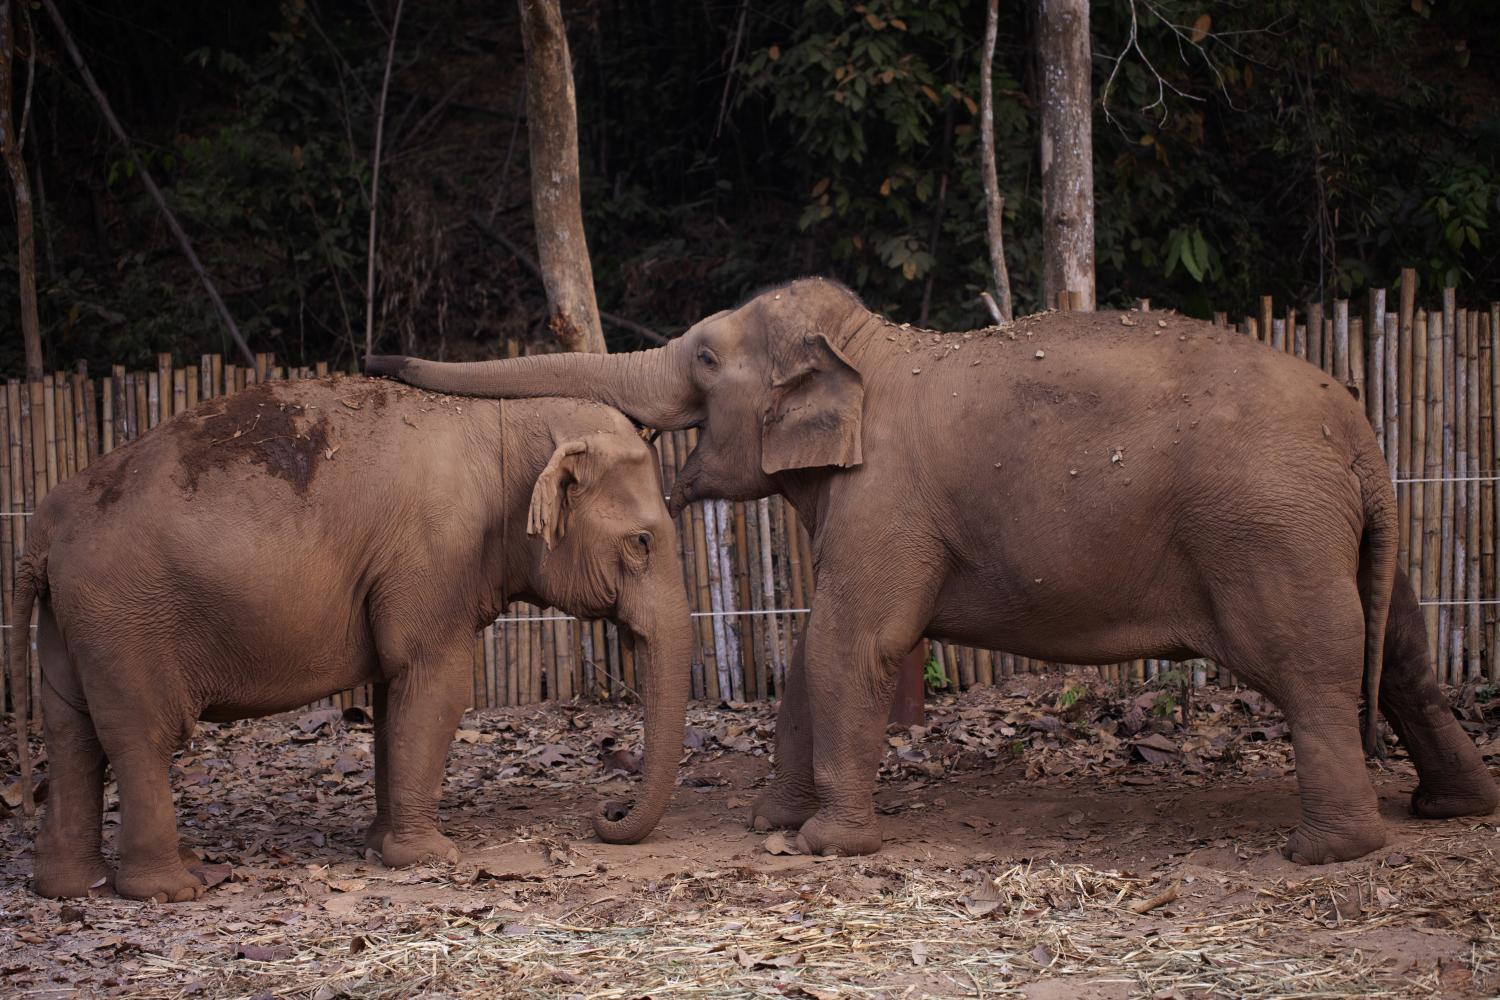 Elephants, a magnet for many visitors to Thailand, are also feeling the effects of the Covid-19 outbreak as tourist numbers plummet. (Photo by Jetjaras Na Ranong)